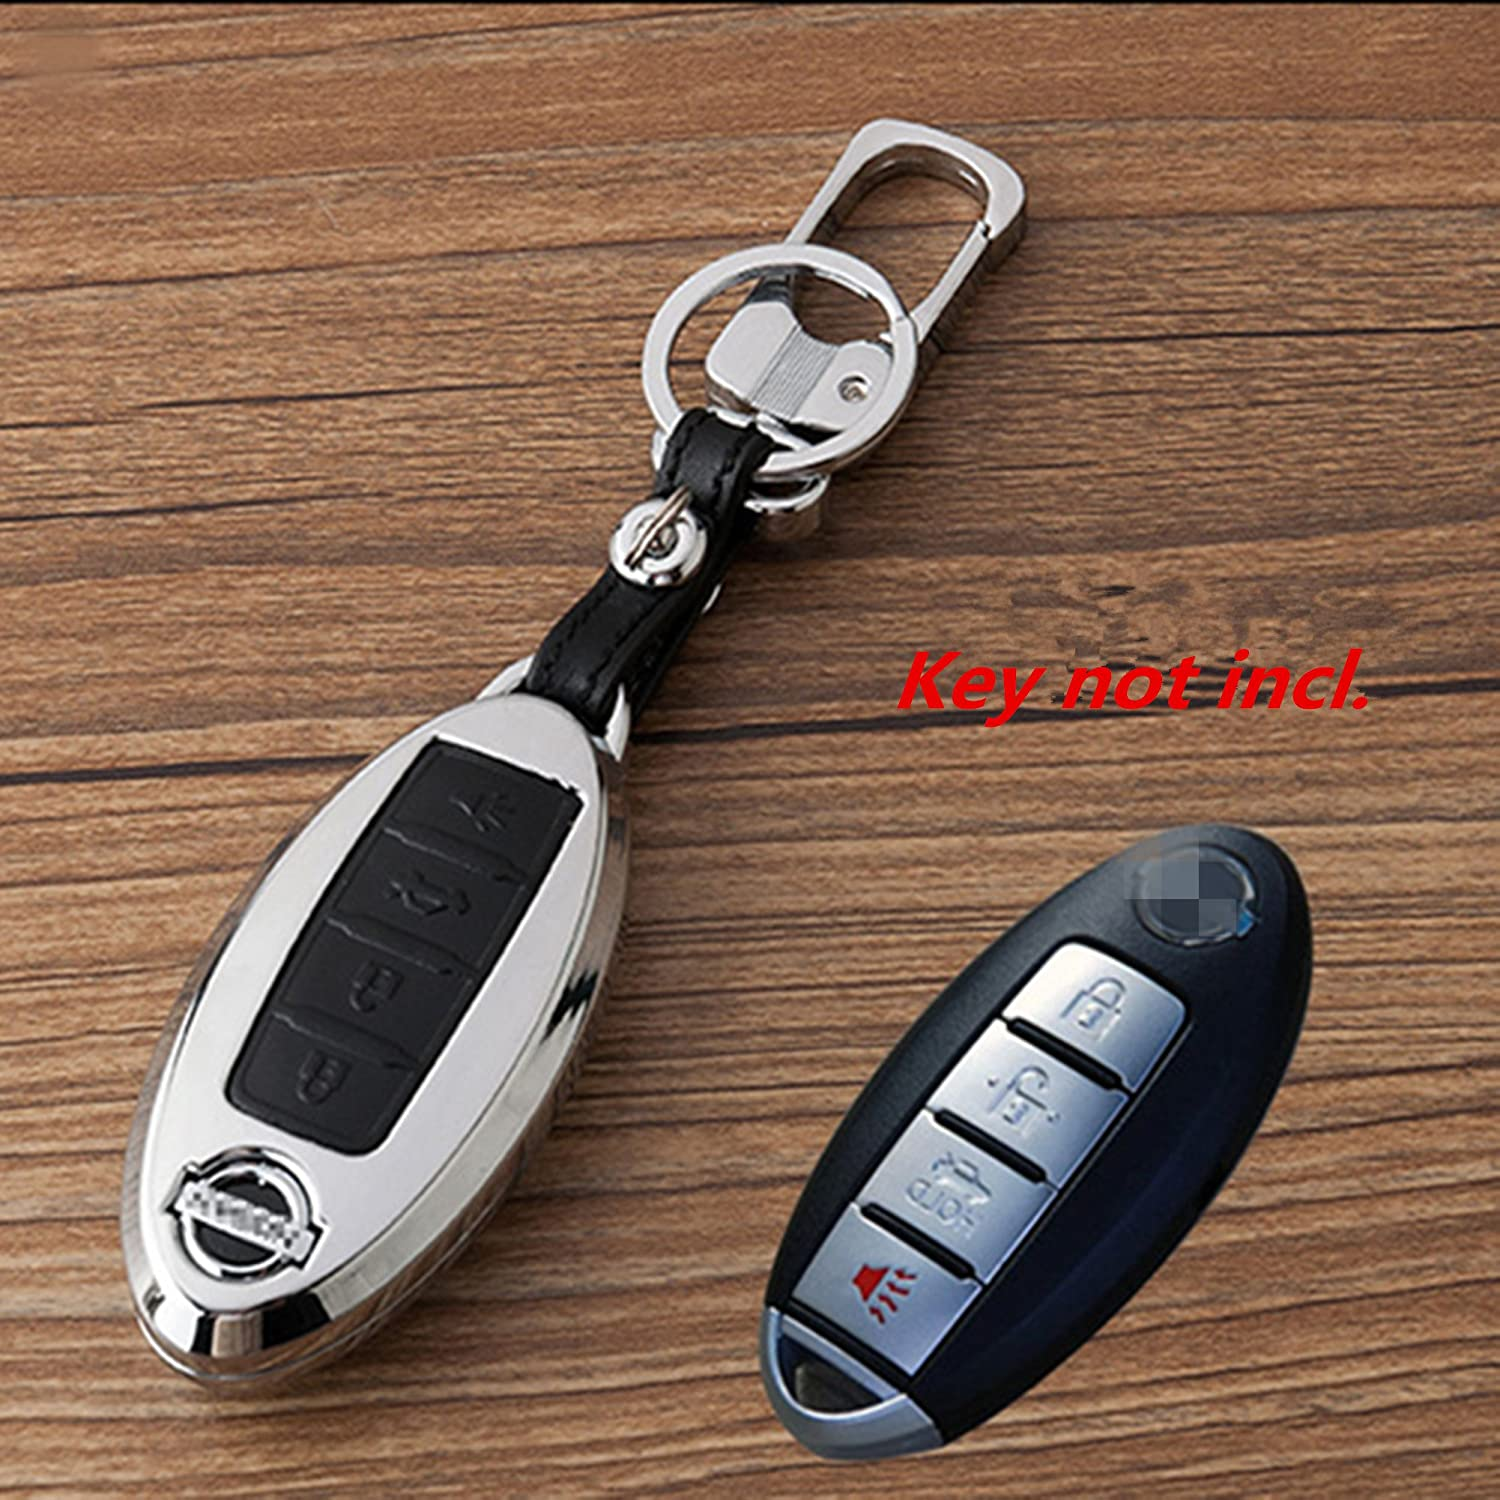 WFMJ Black Zinc Alloy 4 Buttons Leather Remote Key Cover Holder Fob for Nissan GT-R Armada 370Z Altima Cube Juke Maxima Murano Pathfinder Quest Rogue Sentra Versa